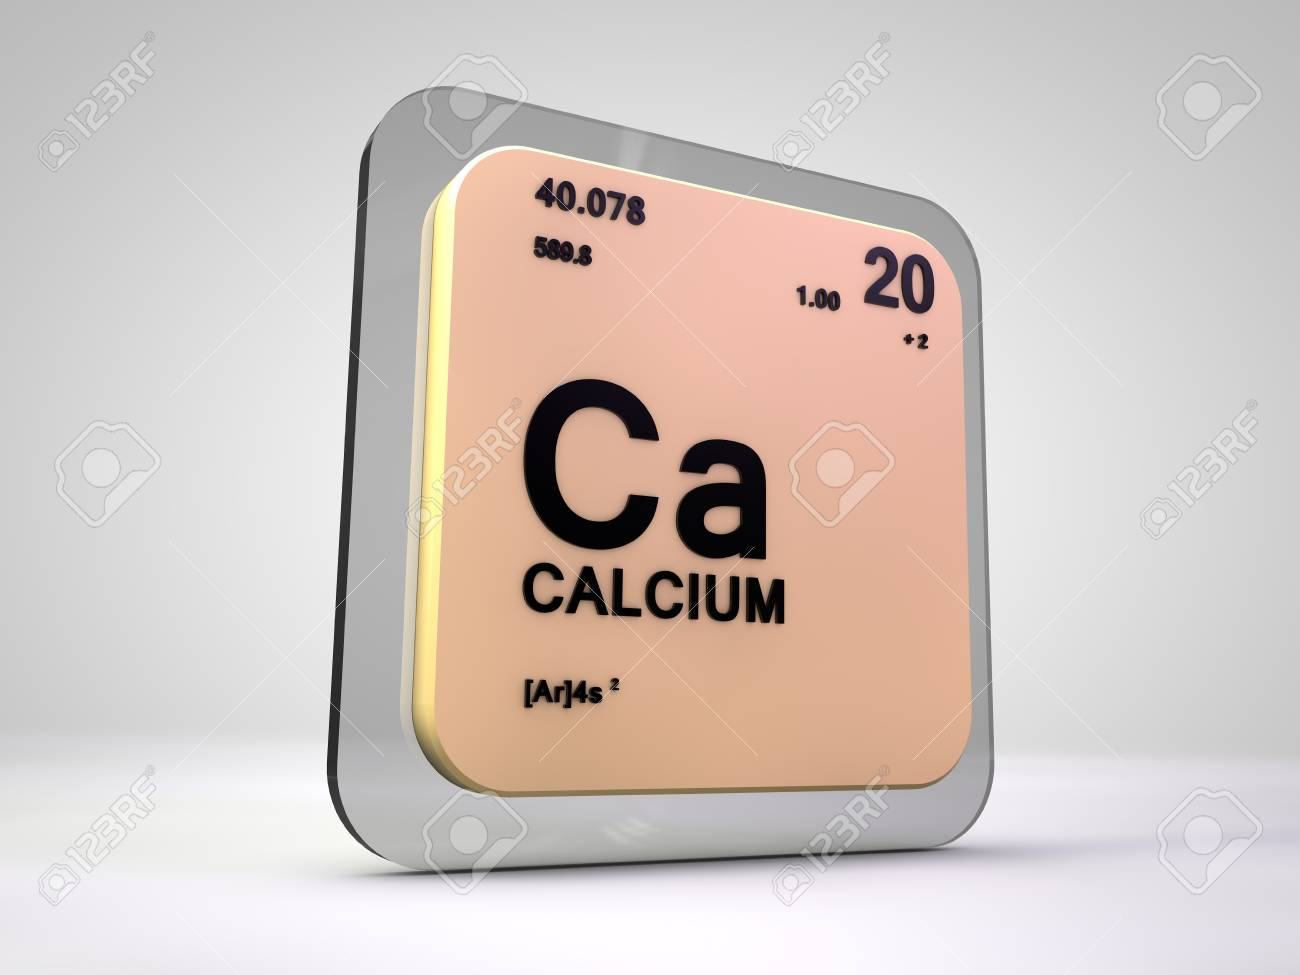 Calcium ca chemical element periodic table 3d render stock photo calcium ca chemical element periodic table 3d render stock photo 74288650 urtaz Gallery